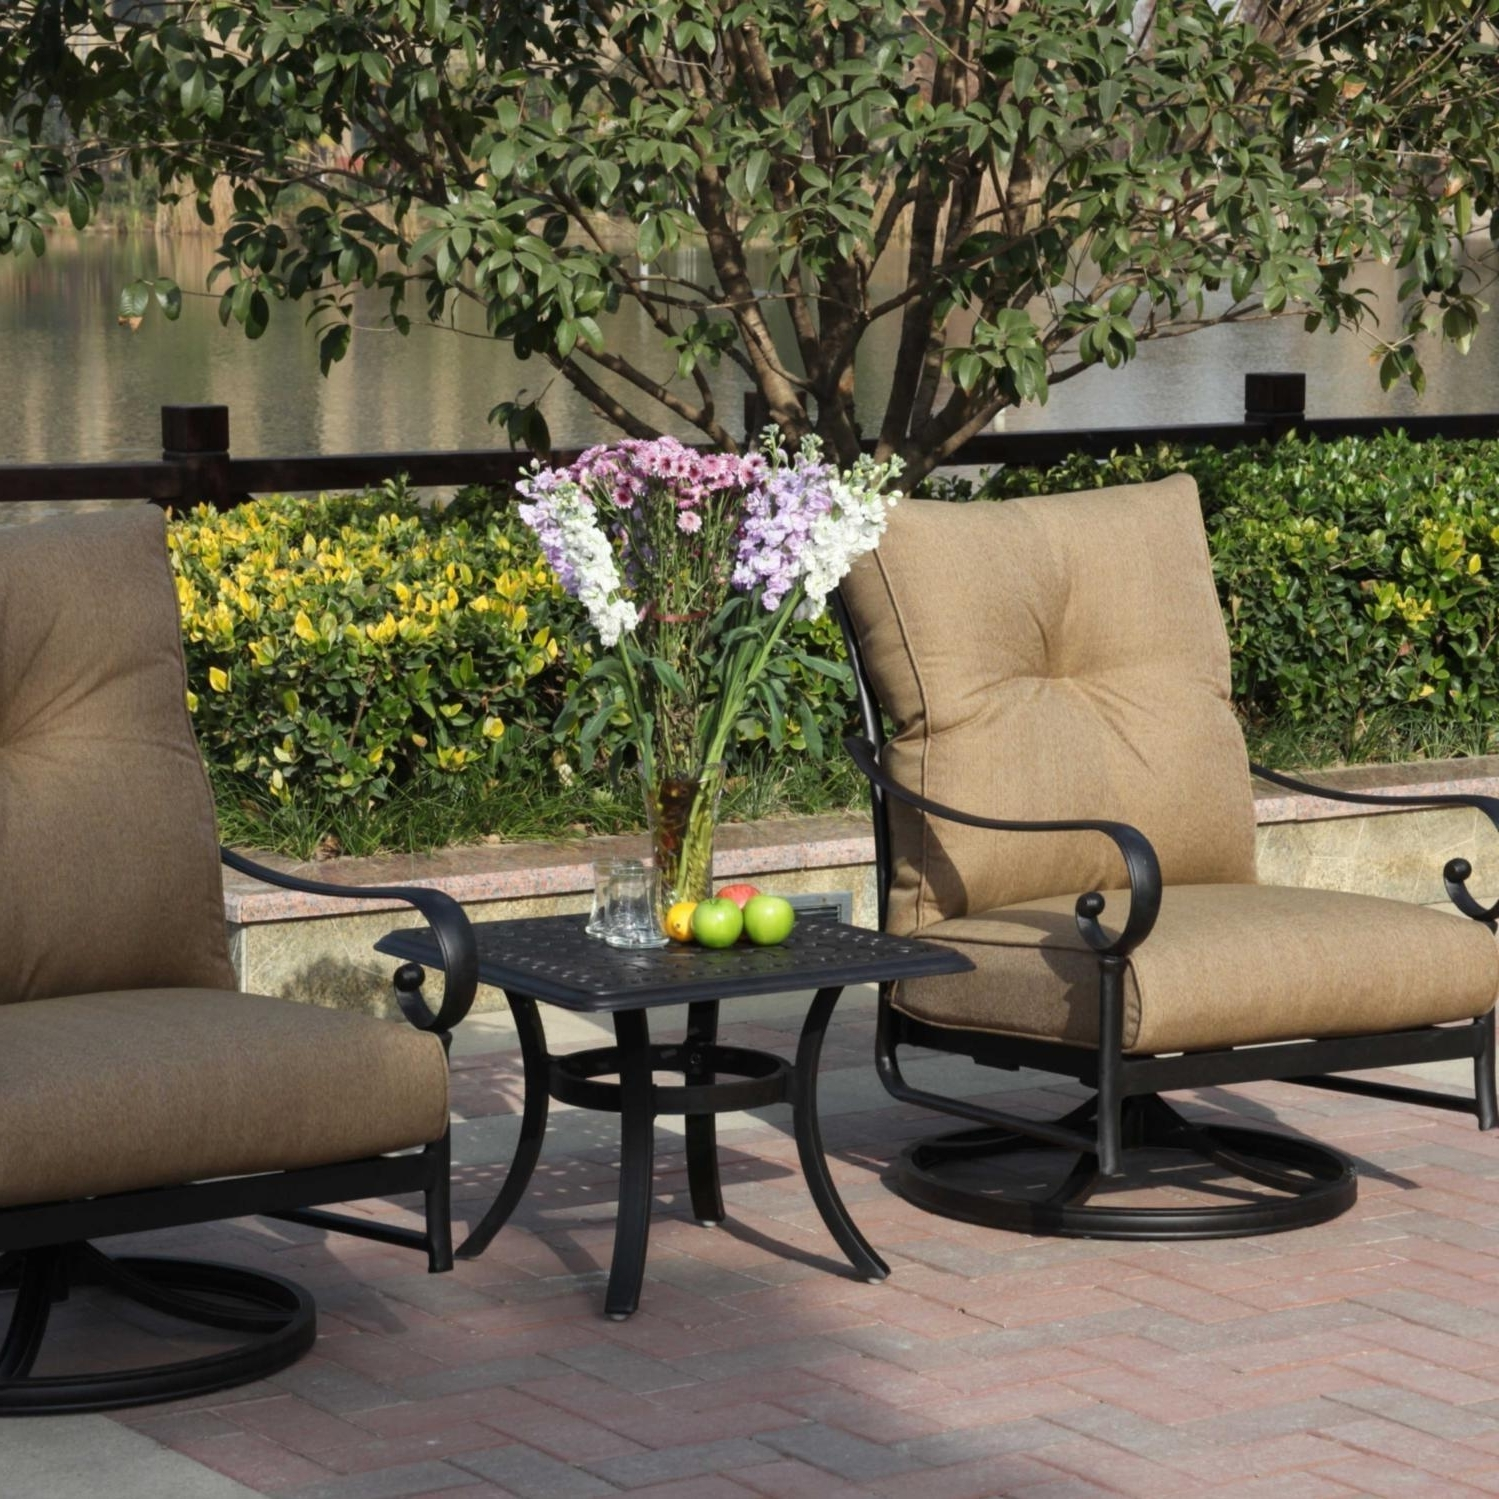 3 Piece Patio Conversation Sets Within Most Current Darlee Santa Anita 3 Piece Cast Aluminum Patio Conversation Seating (Gallery 14 of 20)